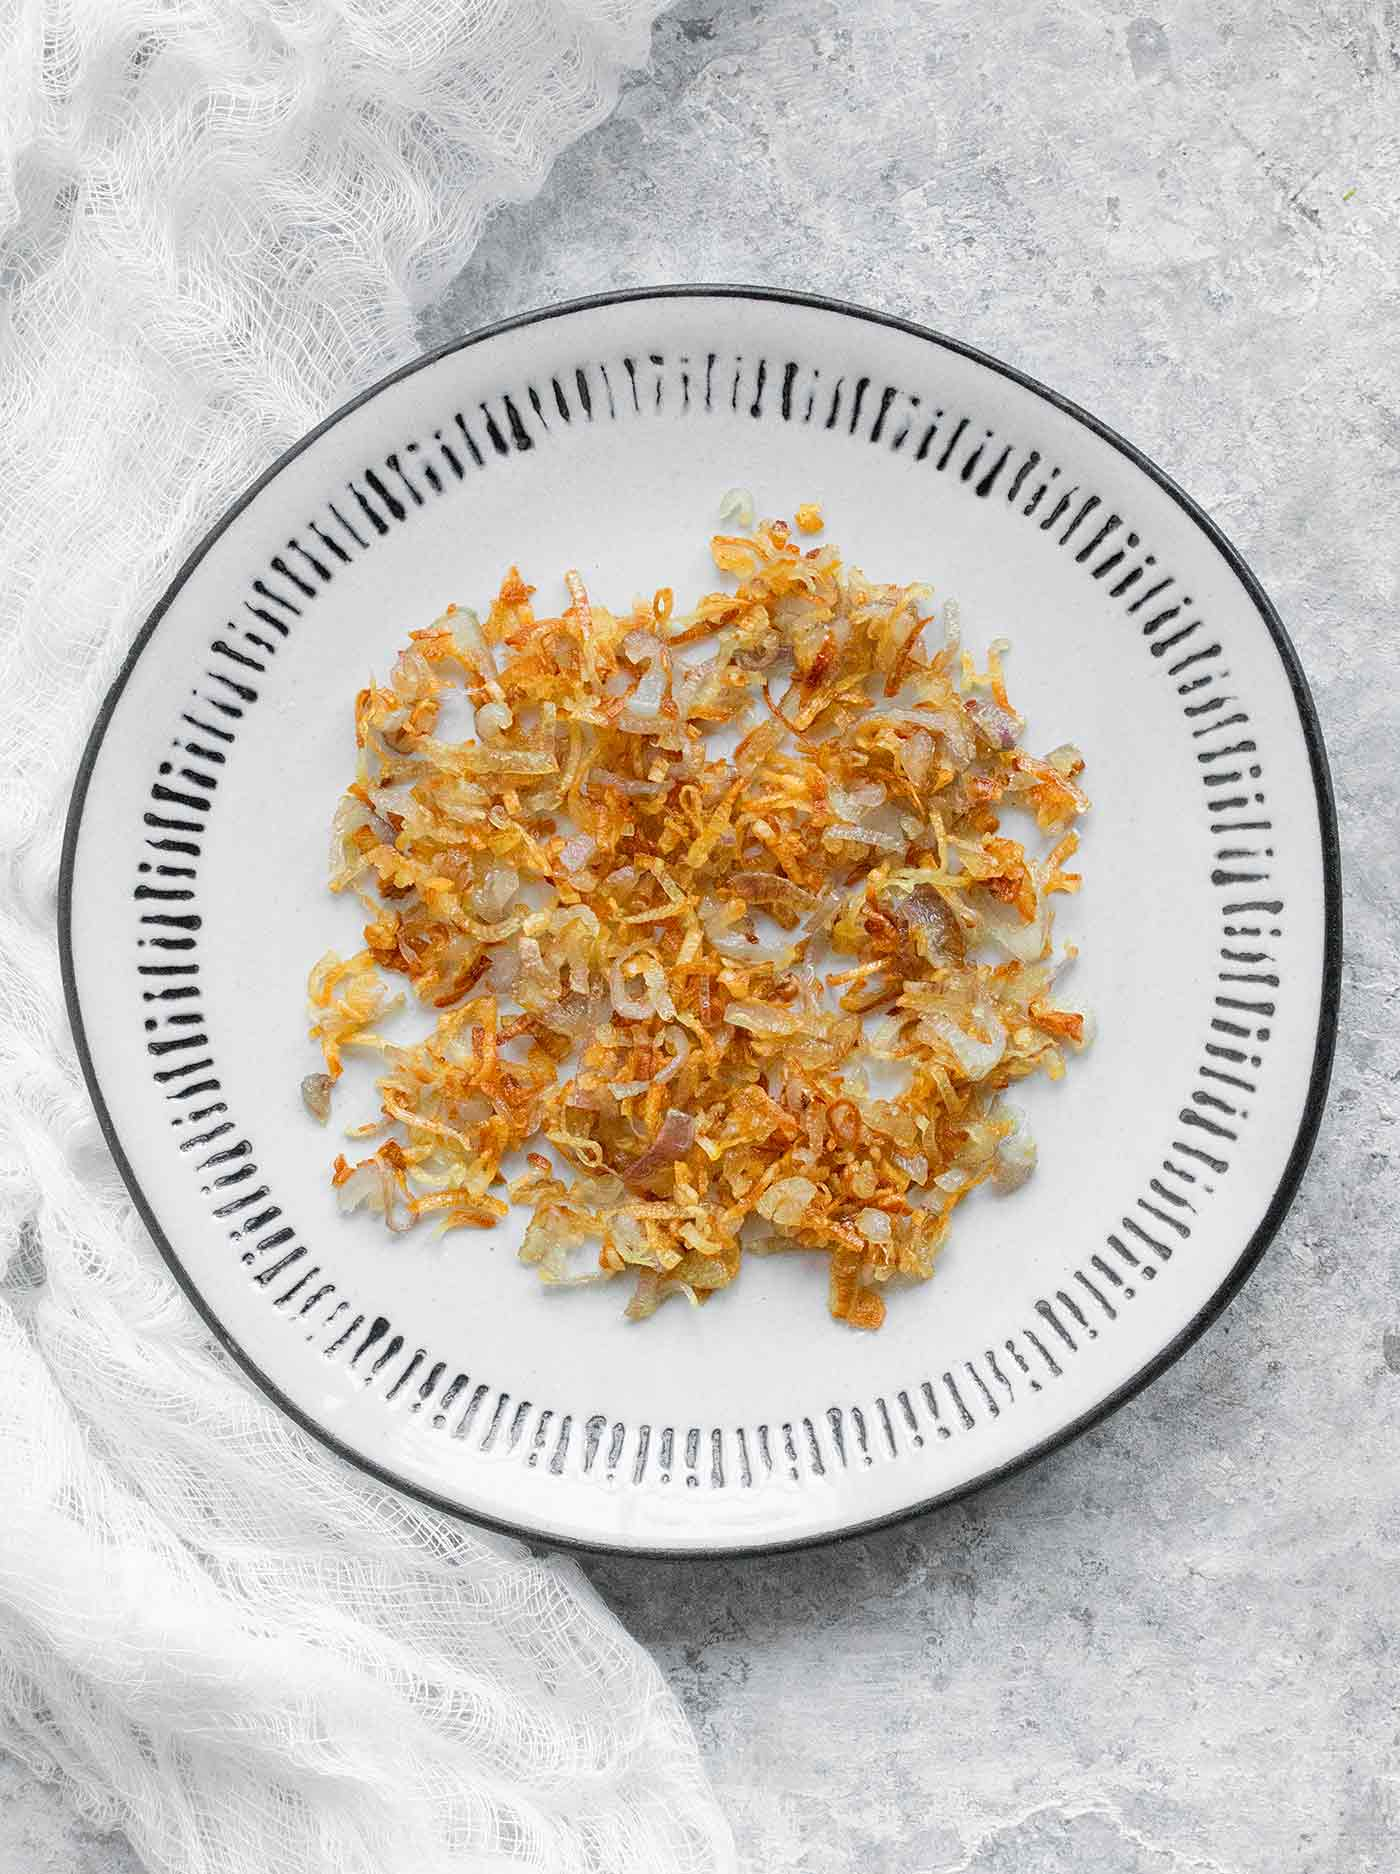 Frizzled shallots - delicious fried shallots